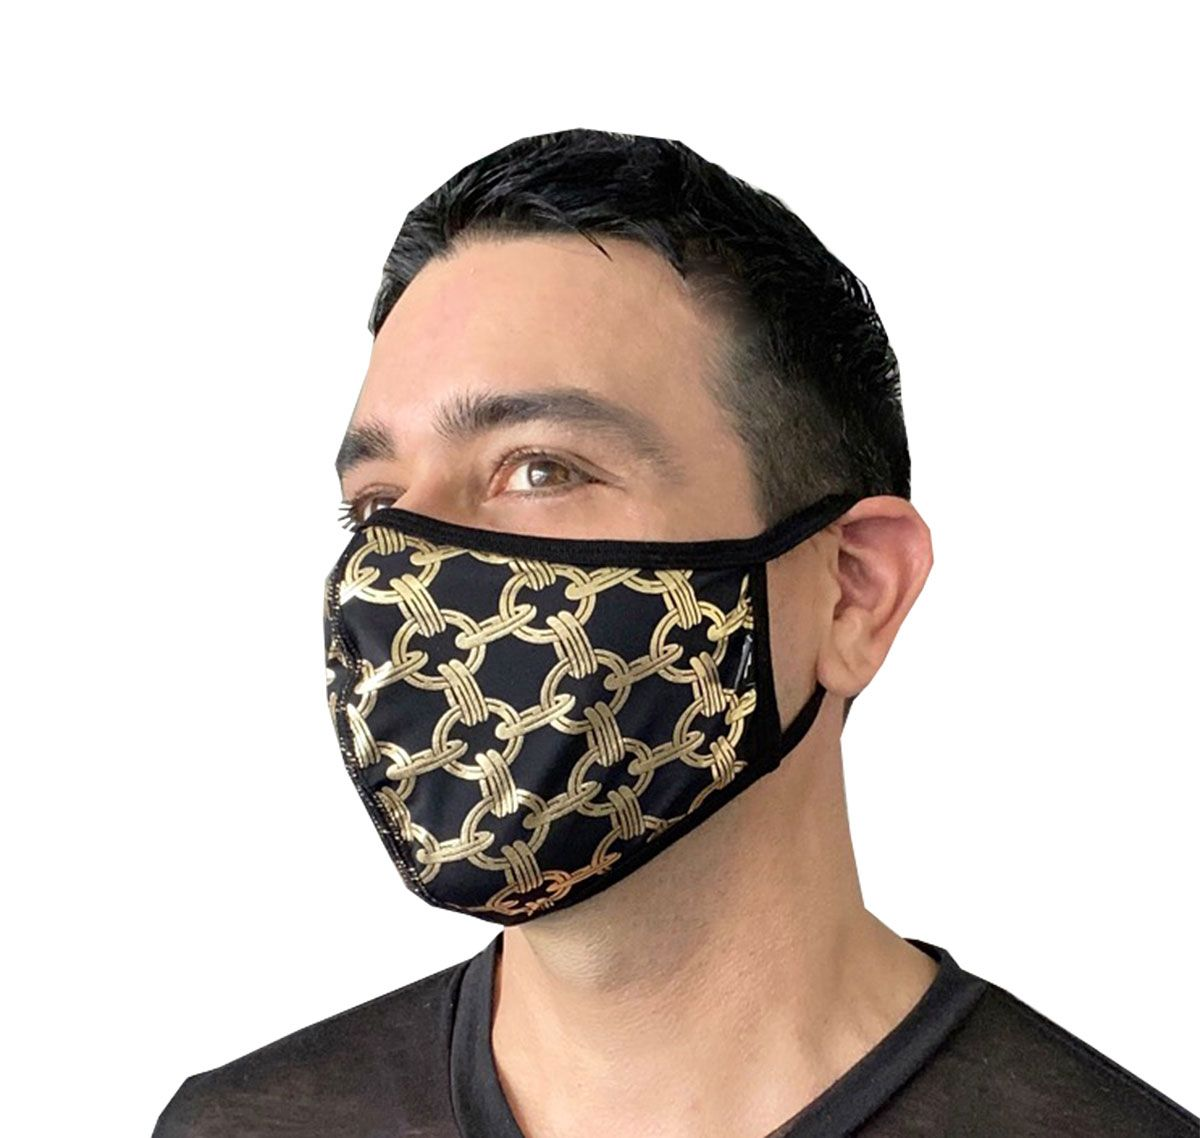 Andrew Christian Face mask CHAIN GLAM MASK 8560, black/gold